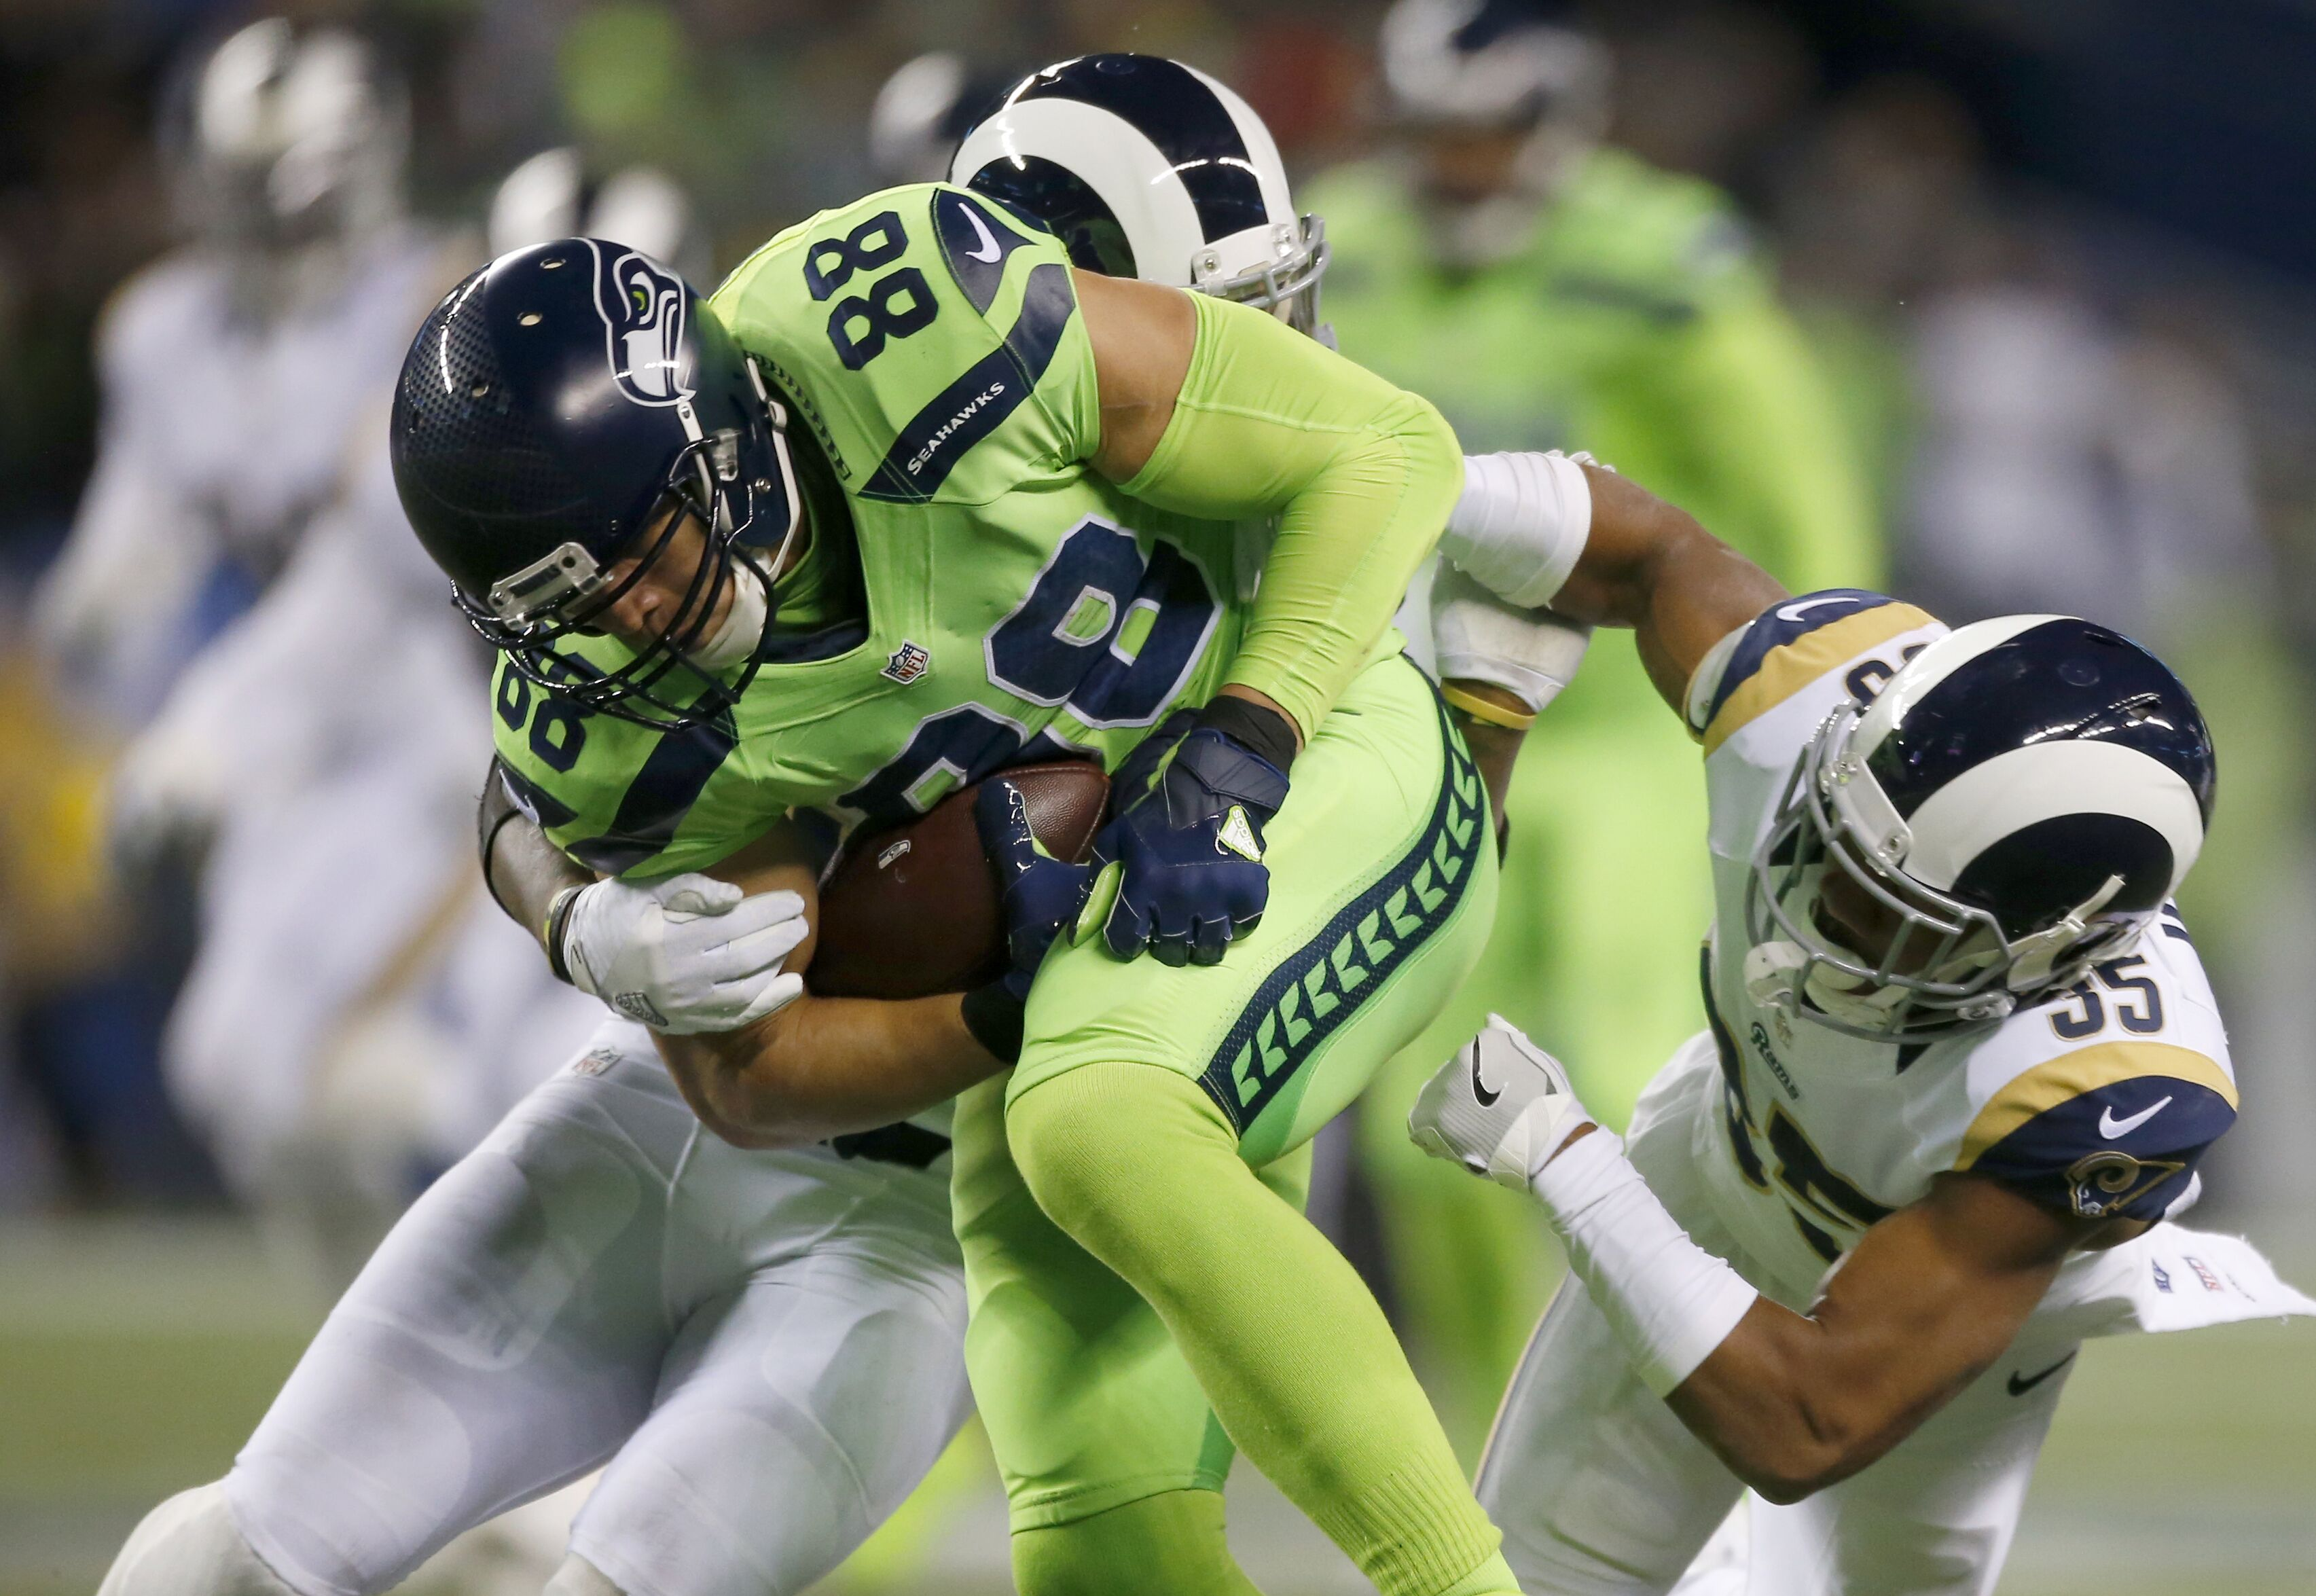 The 2010 Seattle Seahawks season was the 35th season for the team in the National Football League Jim Mora was fired on January 8 2010 leading the Seahawks to come